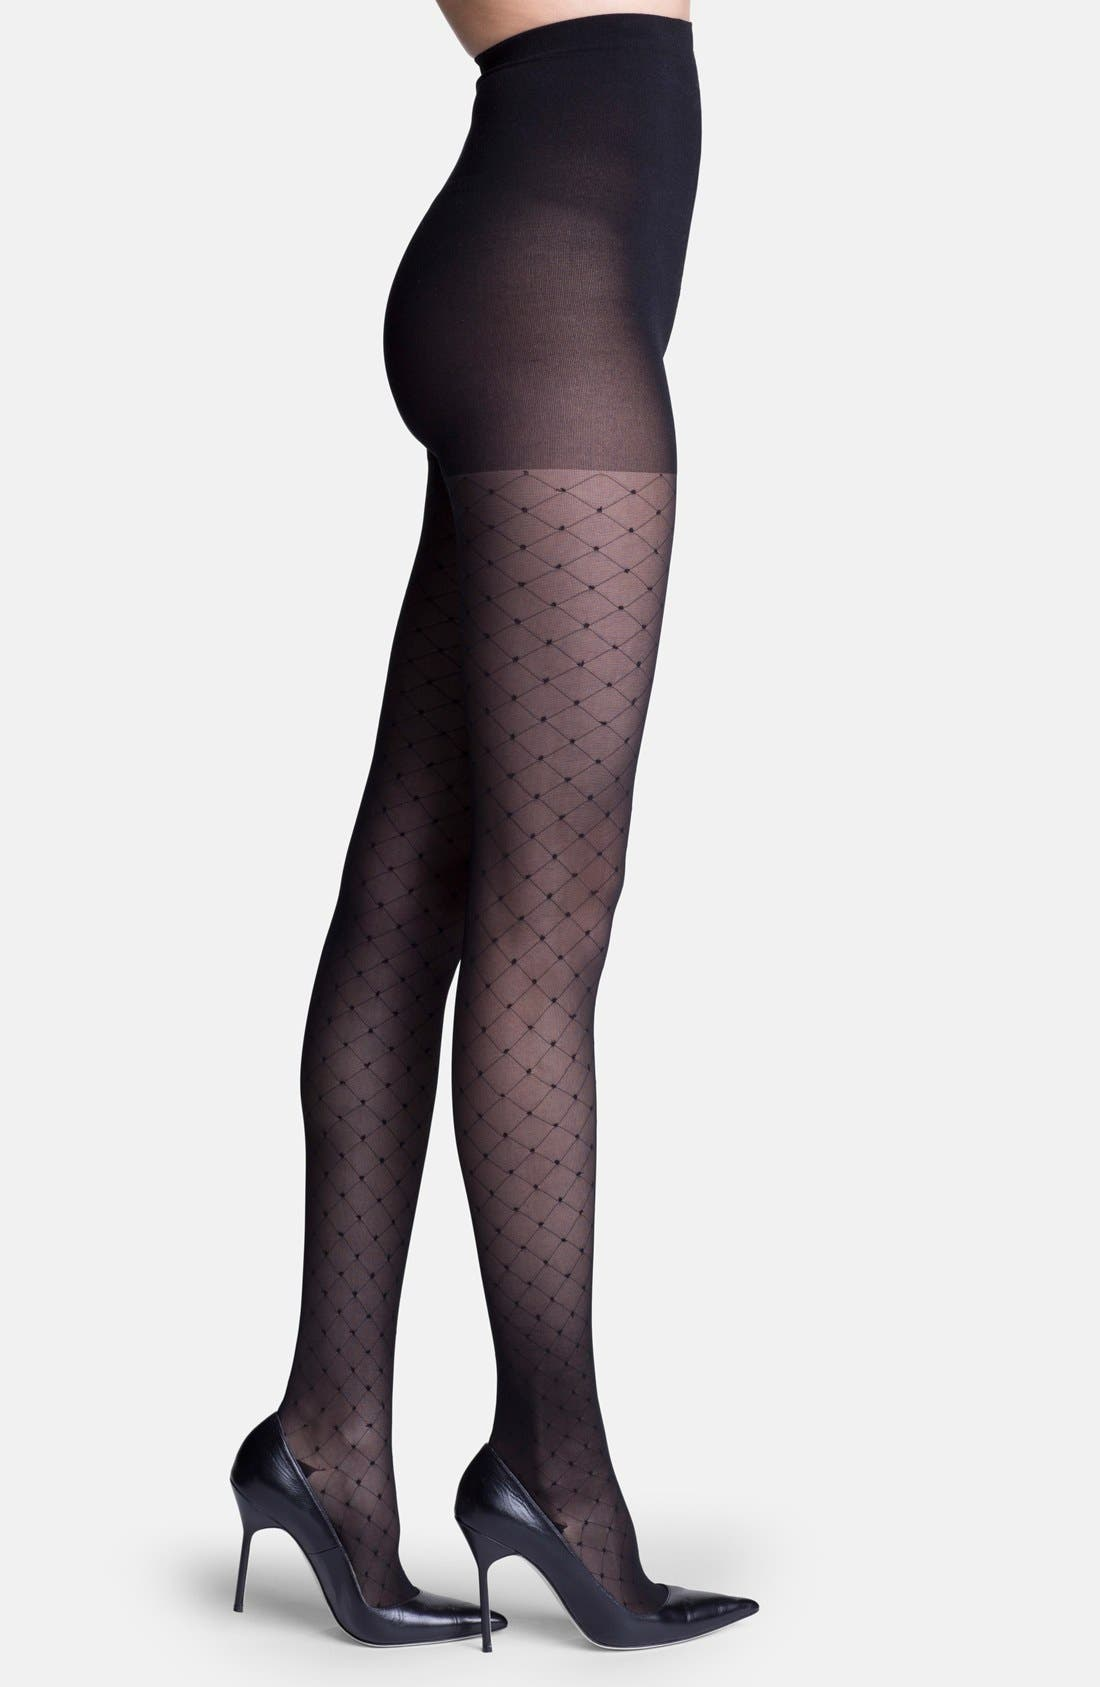 INSIGNIA by SIGVARIS 'Starlet' Diamond Pattern Compression Pantyhose